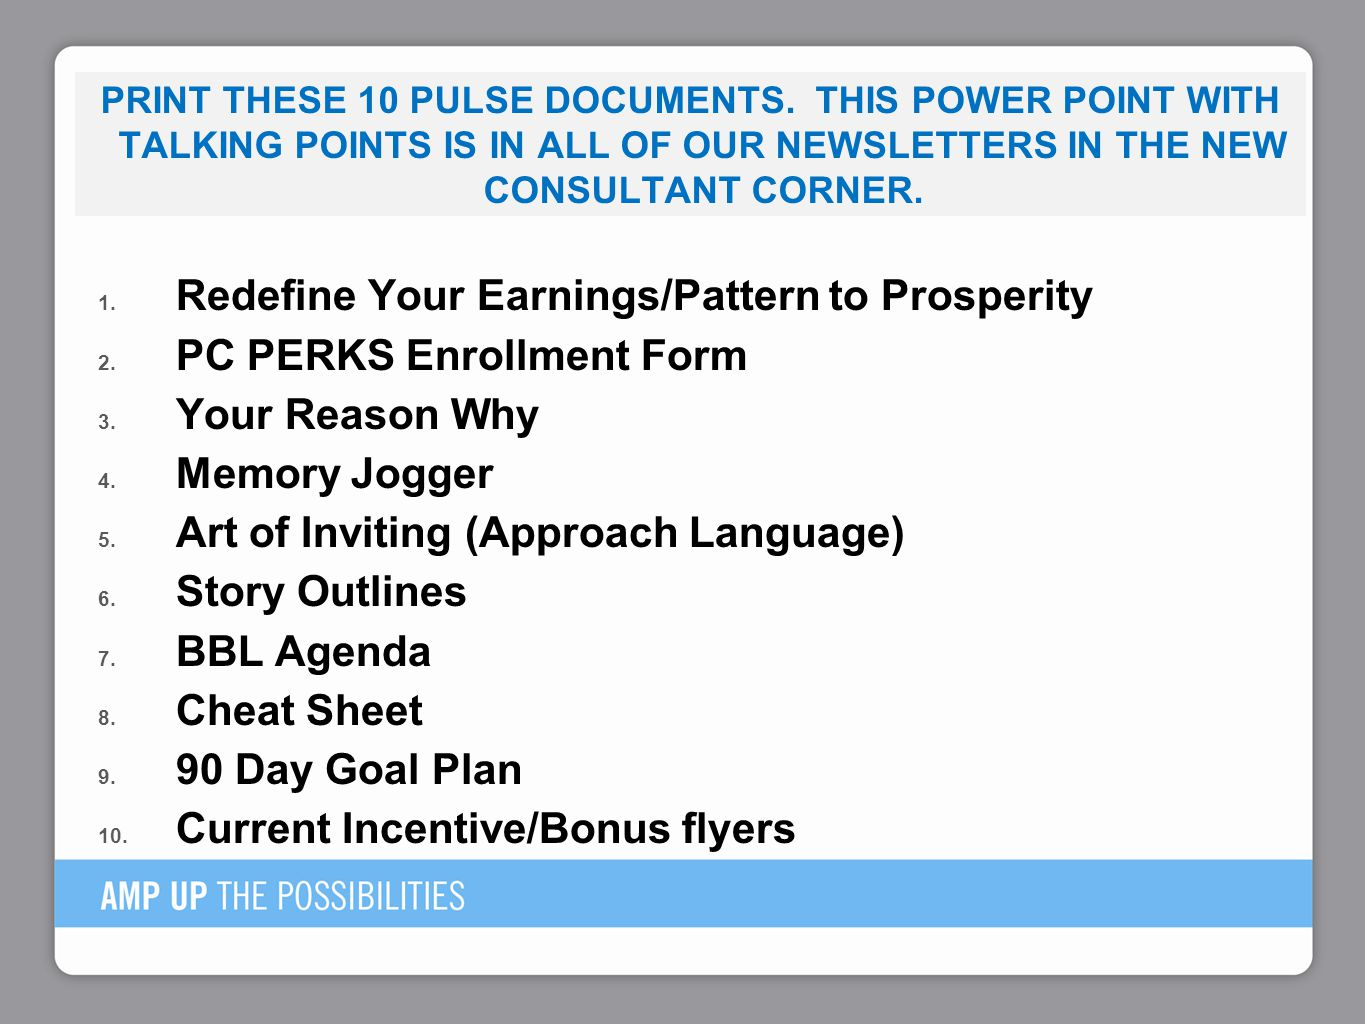 Redefine Your Earnings/Pattern to Prosperity PC PERKS Enrollment Form